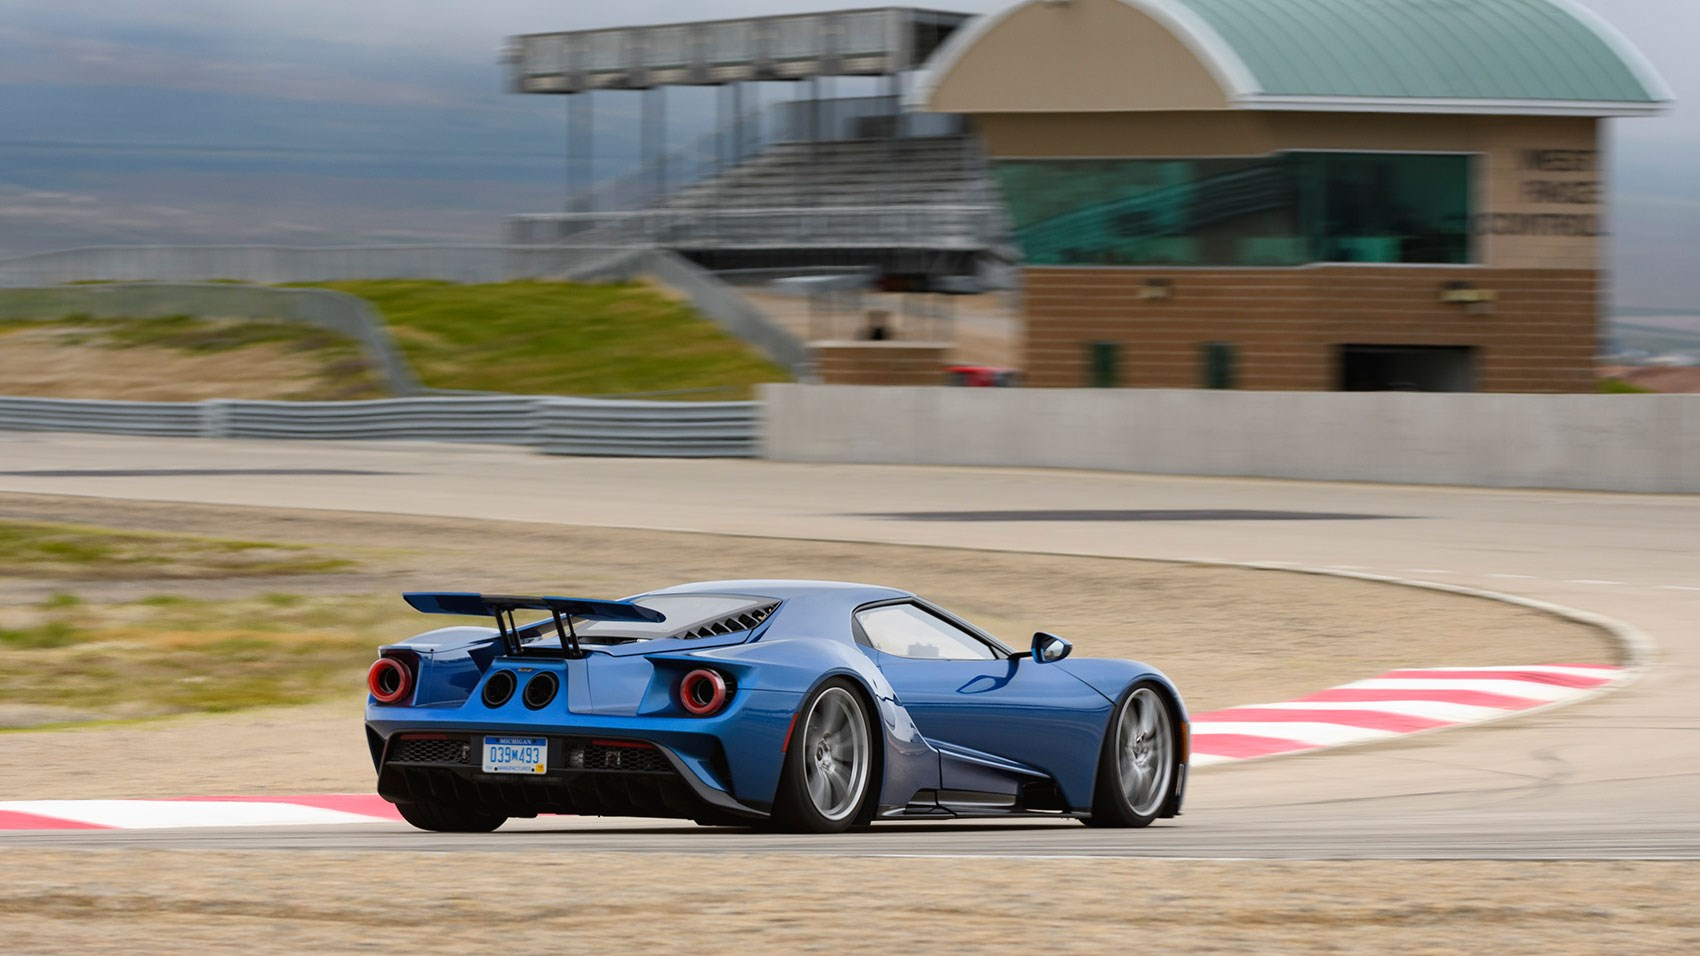 Ford Gt Supercar A Race Car For The Road